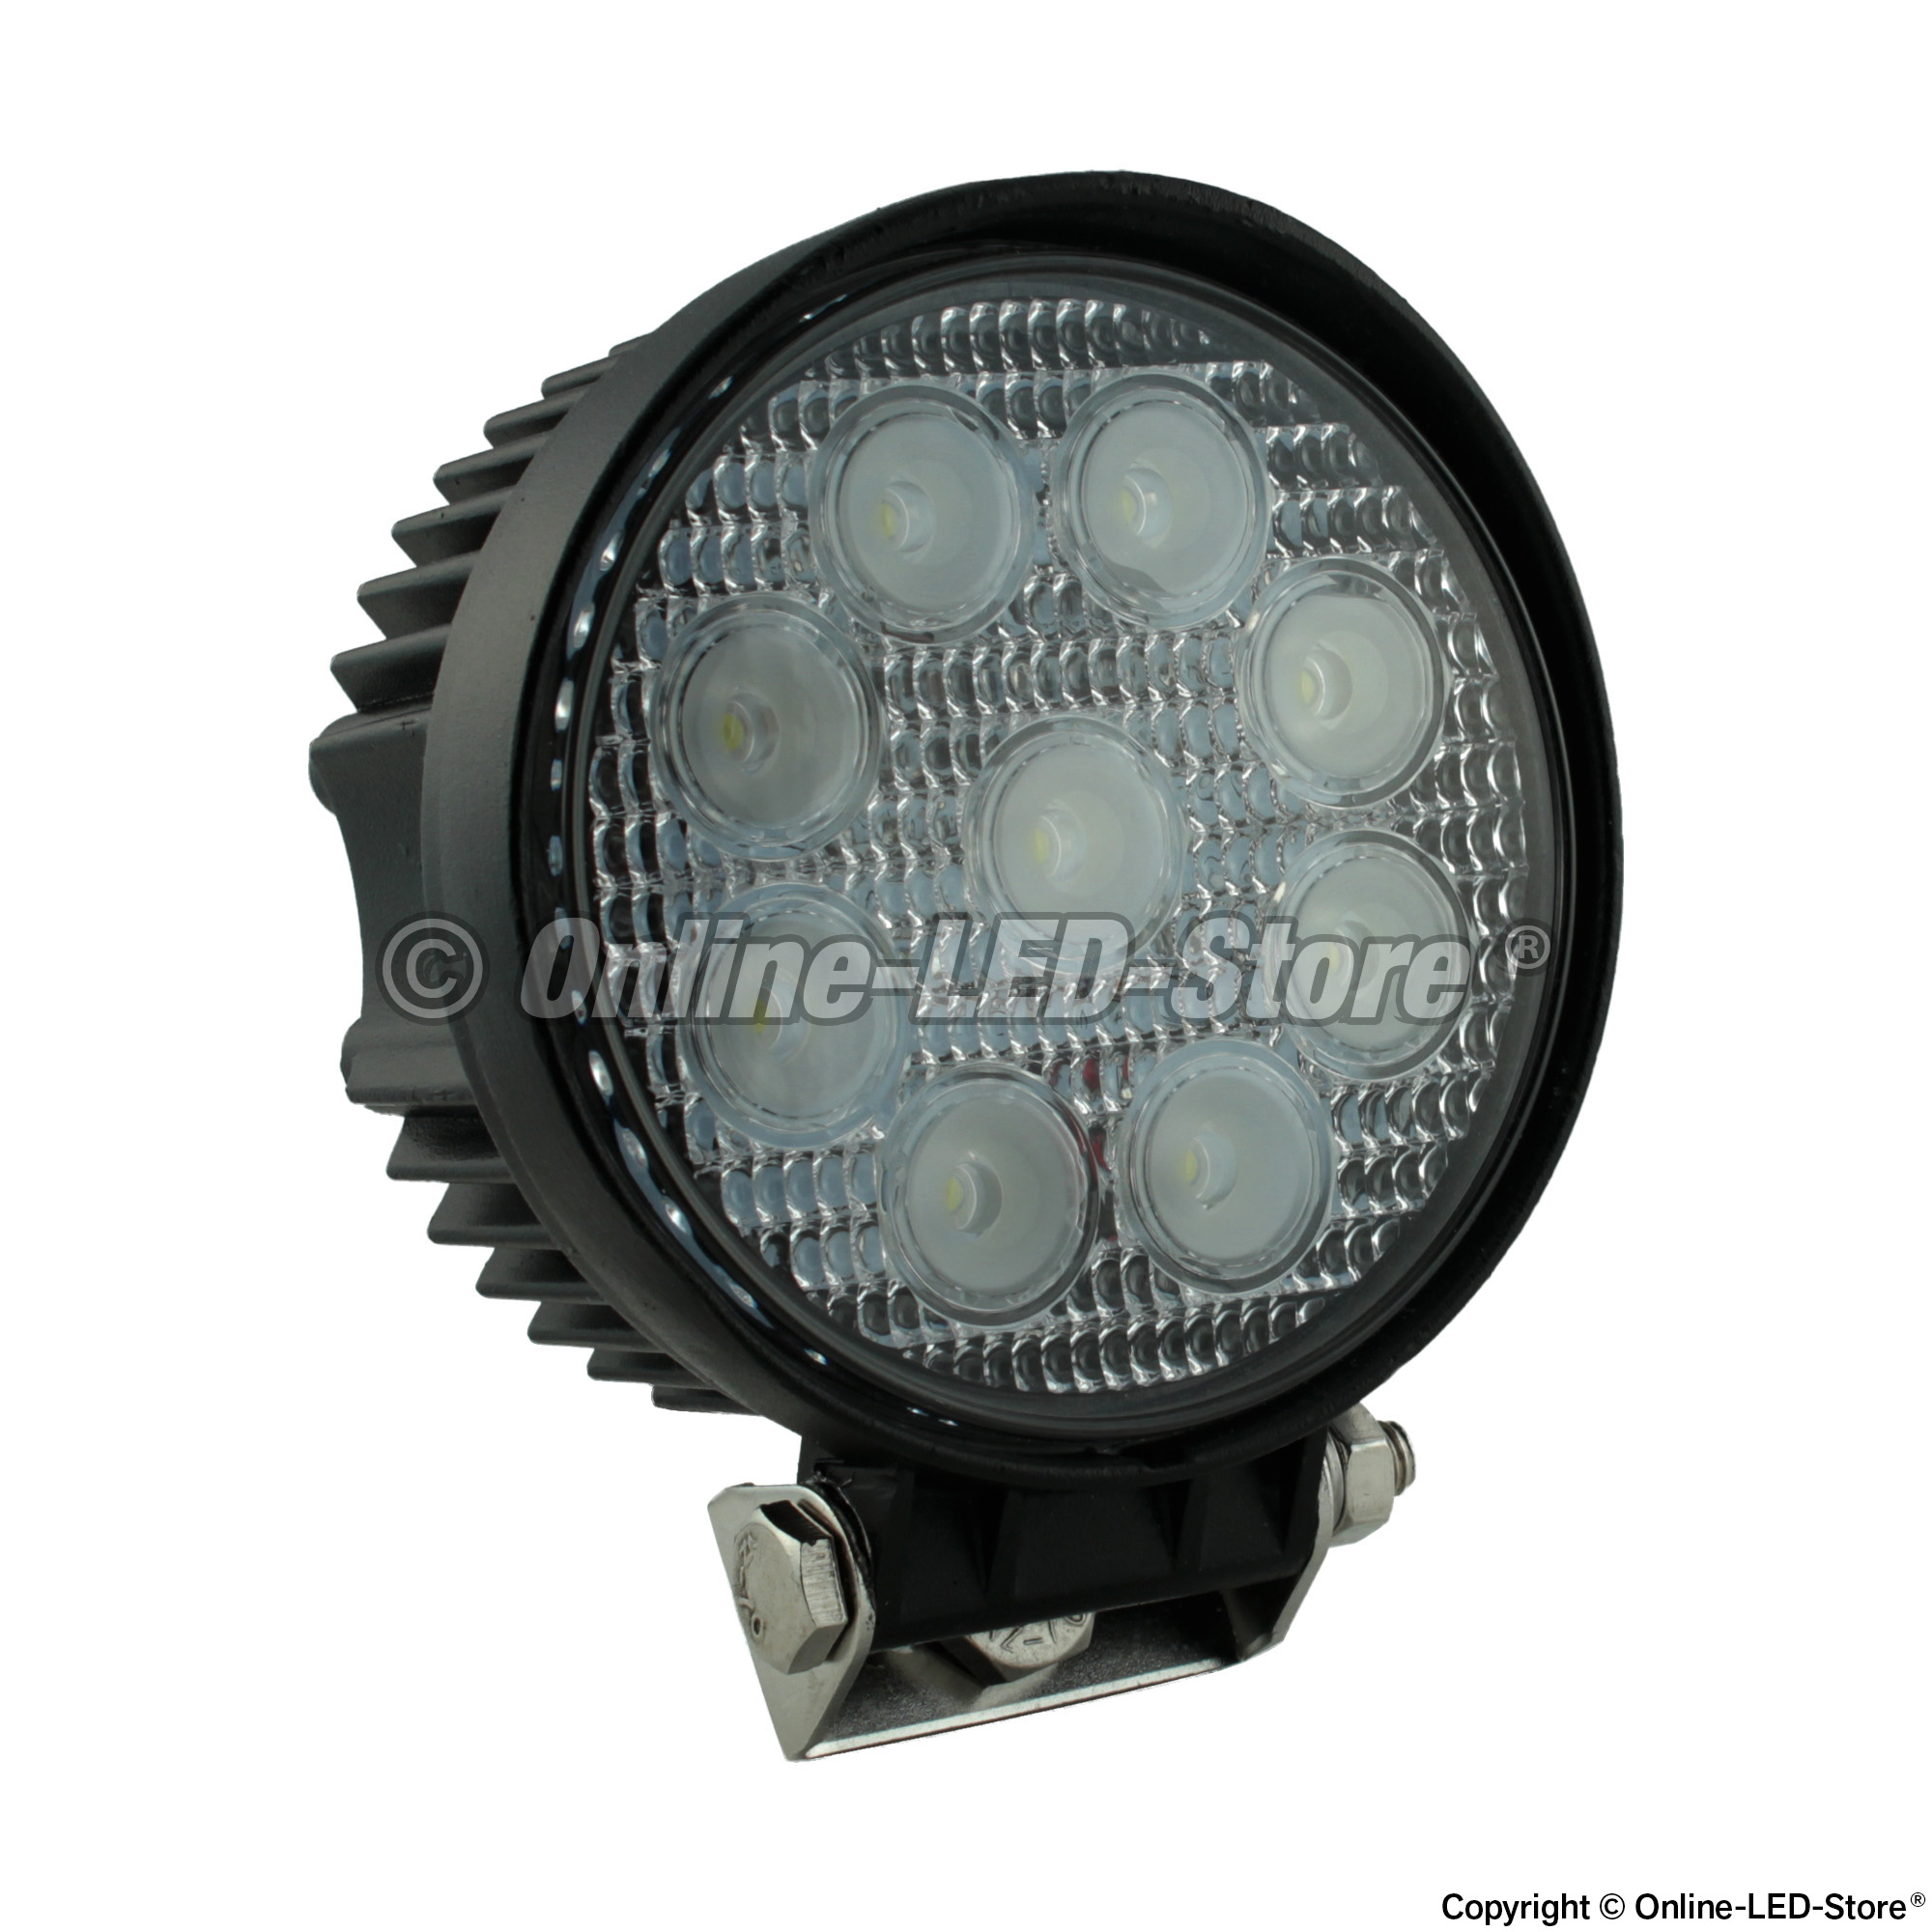 Lighting Store Online: LED Auxiliary Light